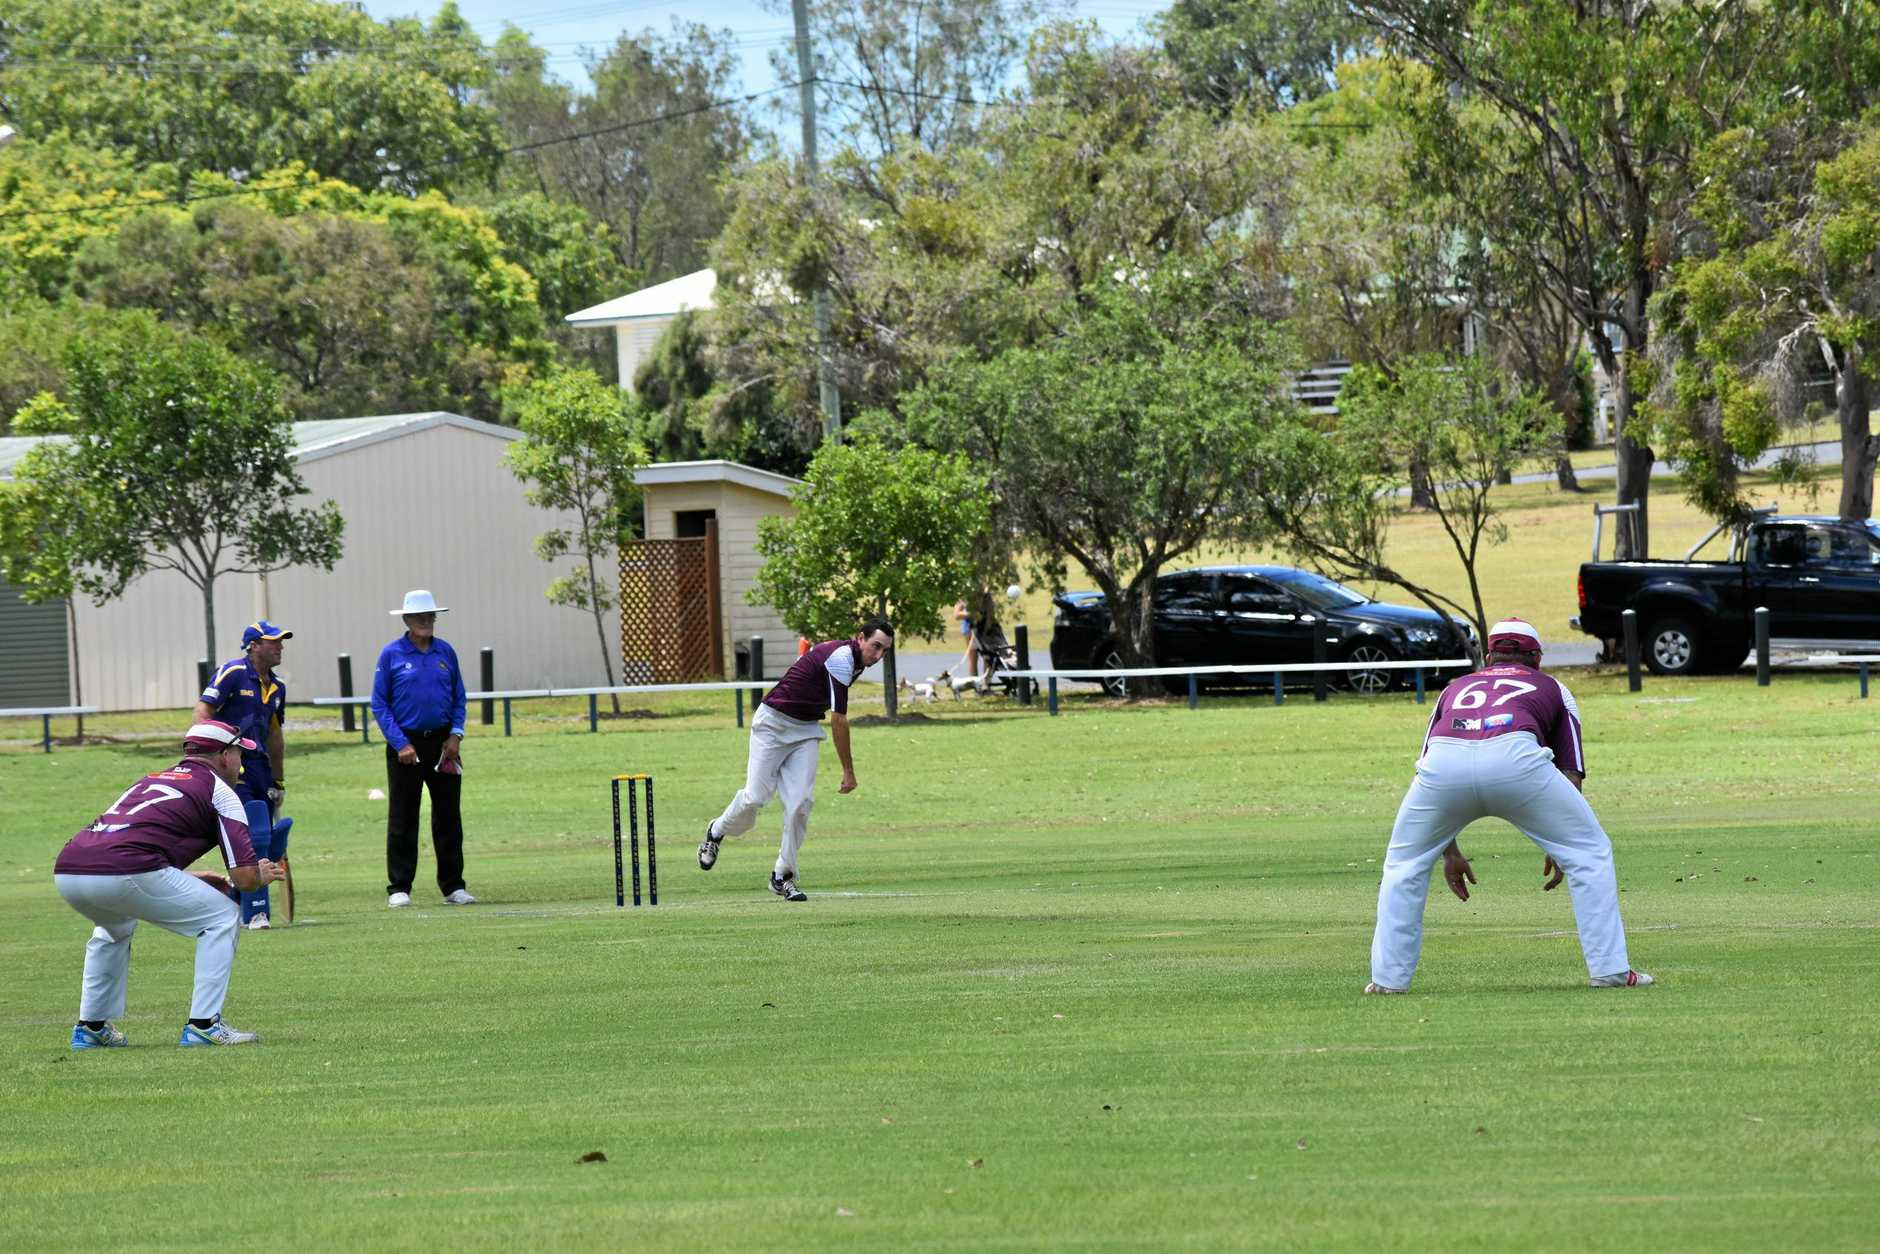 Gympie Regional Cricket at the the One Mile Ovals. In another hotly contested season, the two top sides Murgon and Colts will go head to head in the first finals and the second between Valleys and Harlequins.